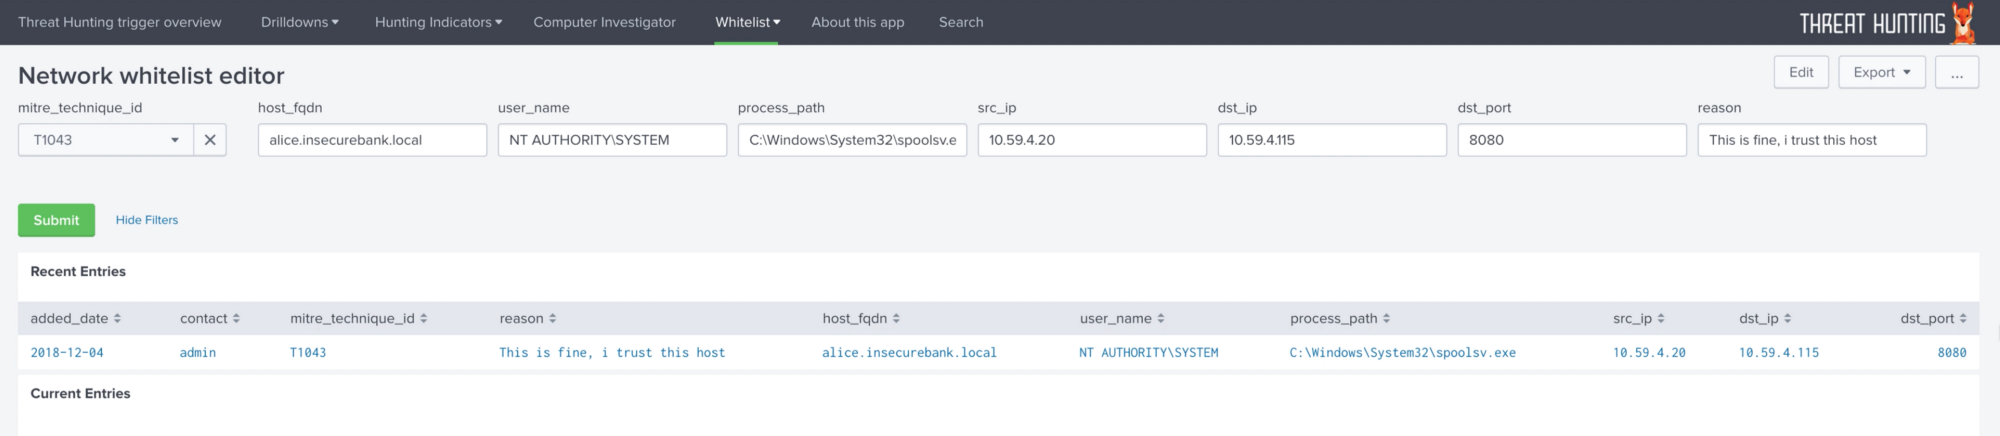 Endpoint detection superpowers on the cheap, Threat Hunting app